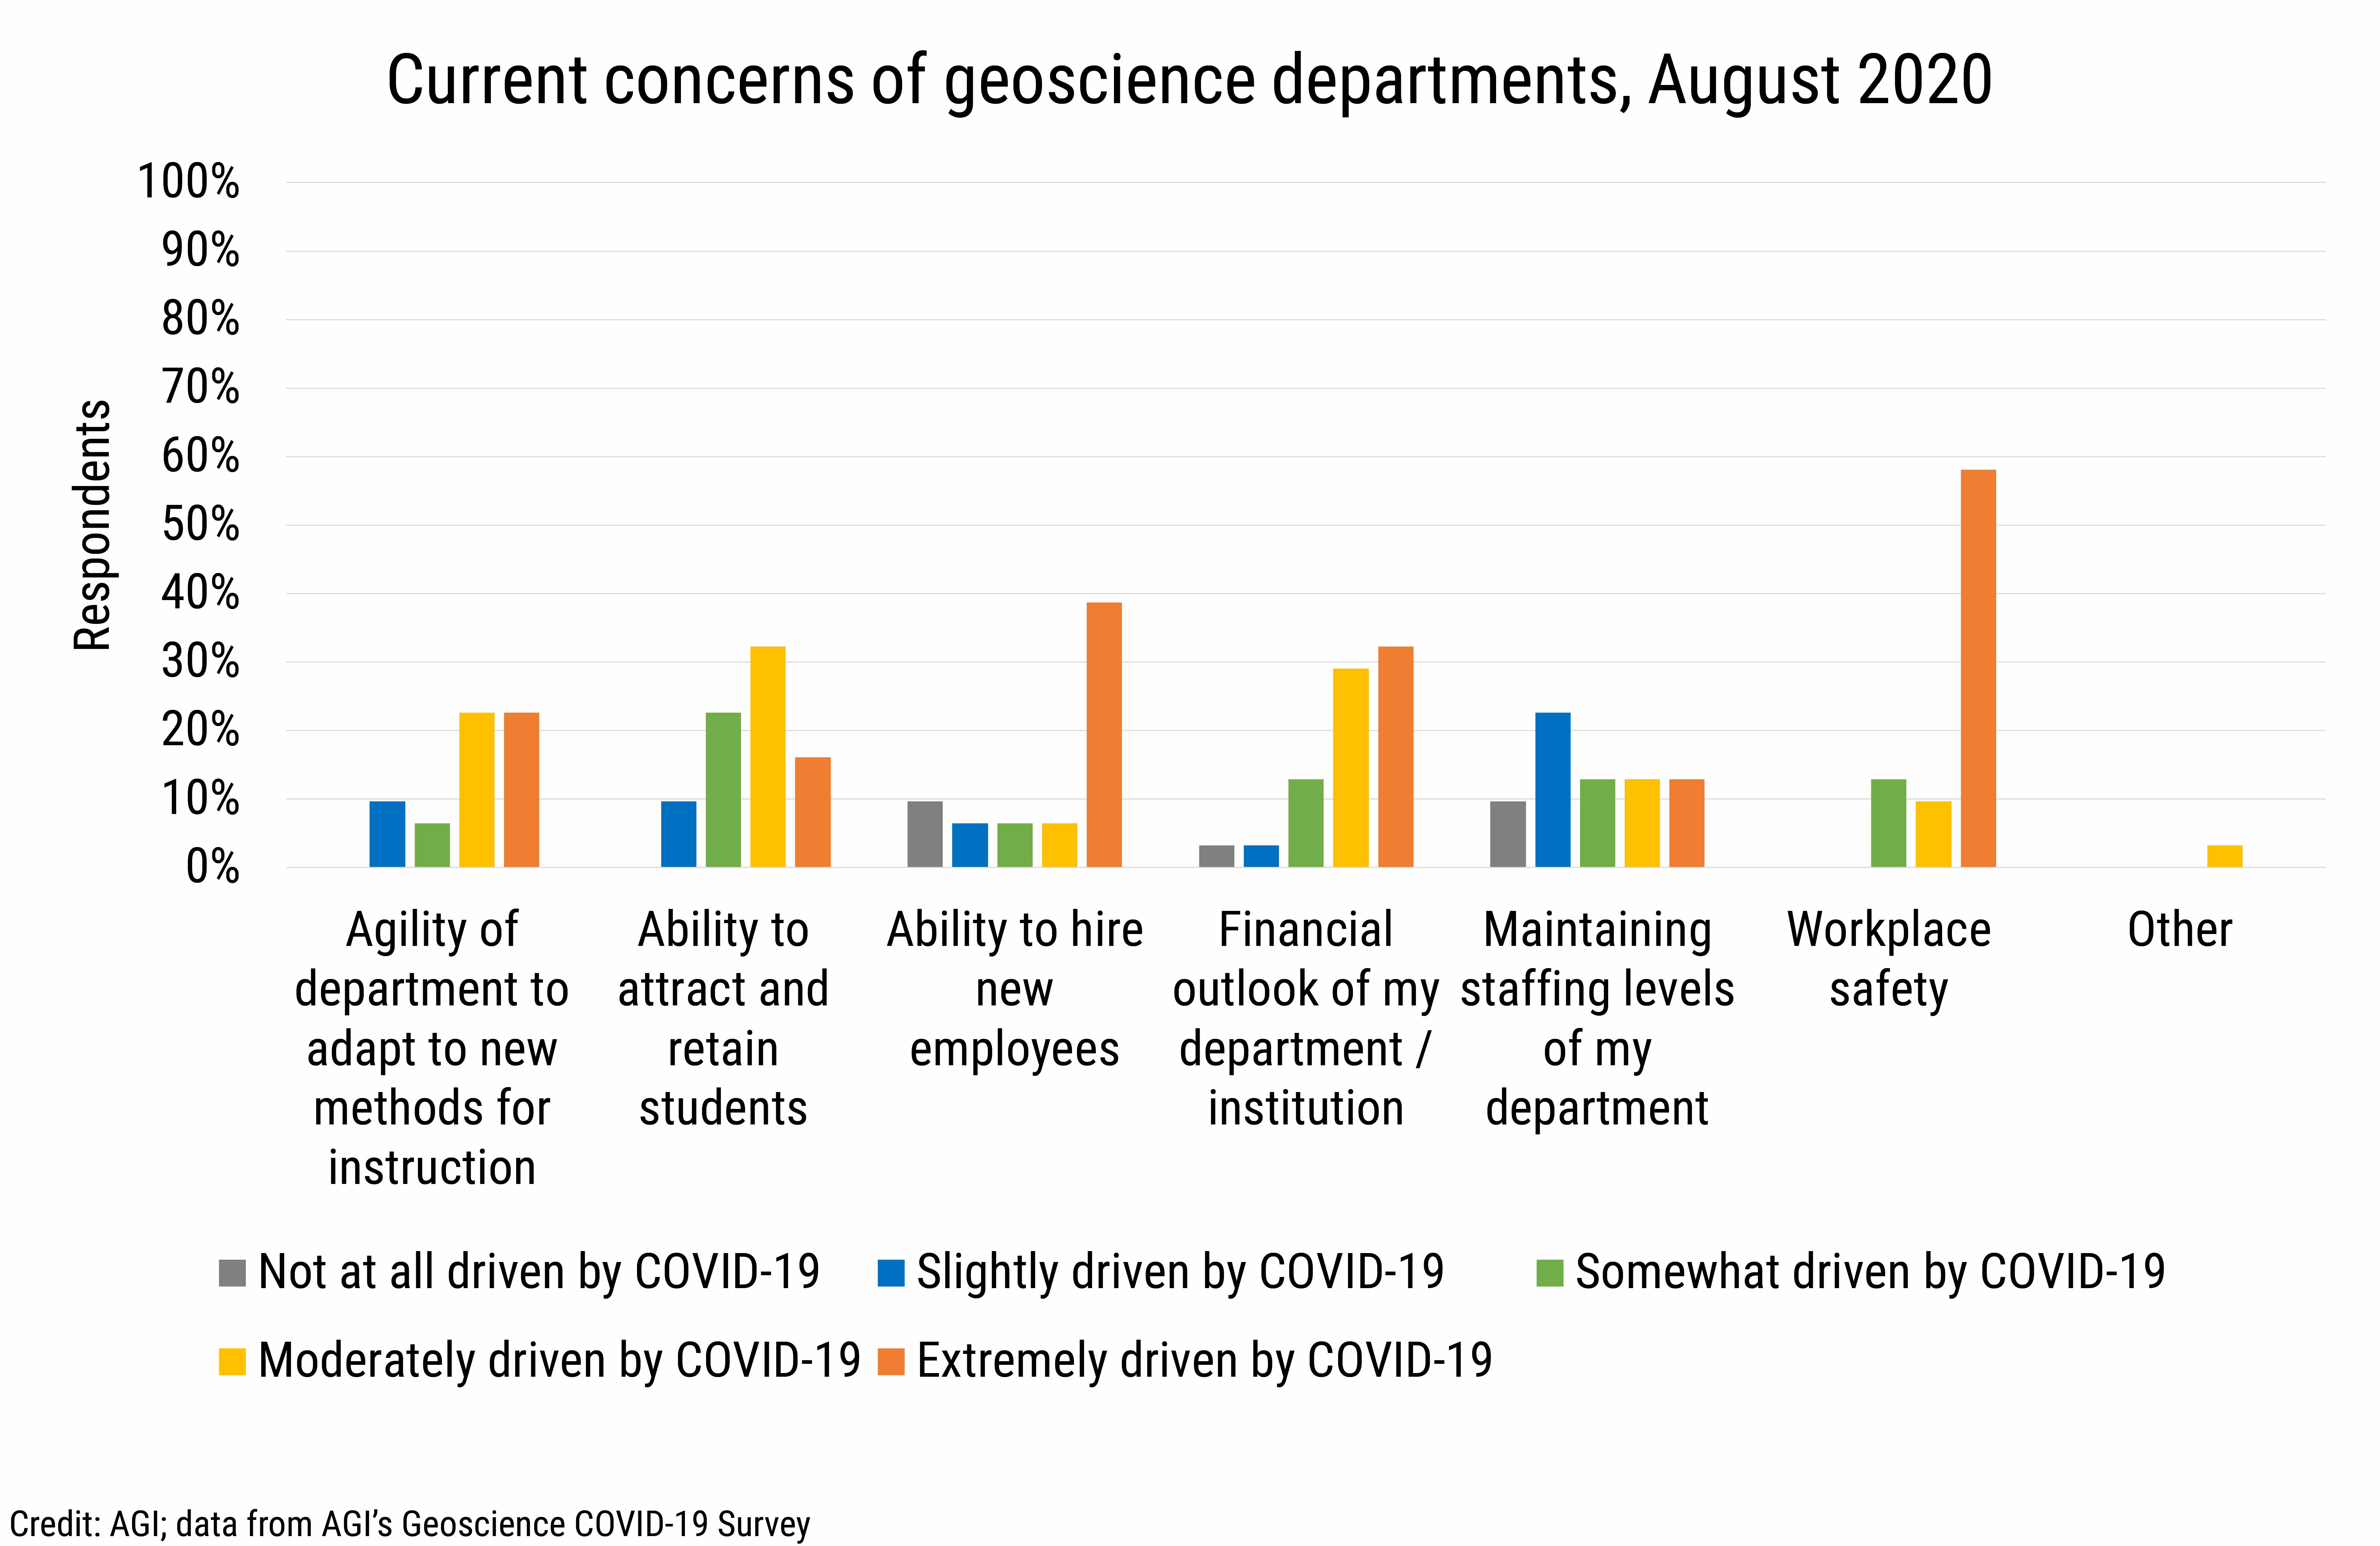 DB_2020-018 chart01: Current concerns of geoscience departments, August 2020 (credit: AGI, data from AGI's Geoscience COVID-19 Survey)